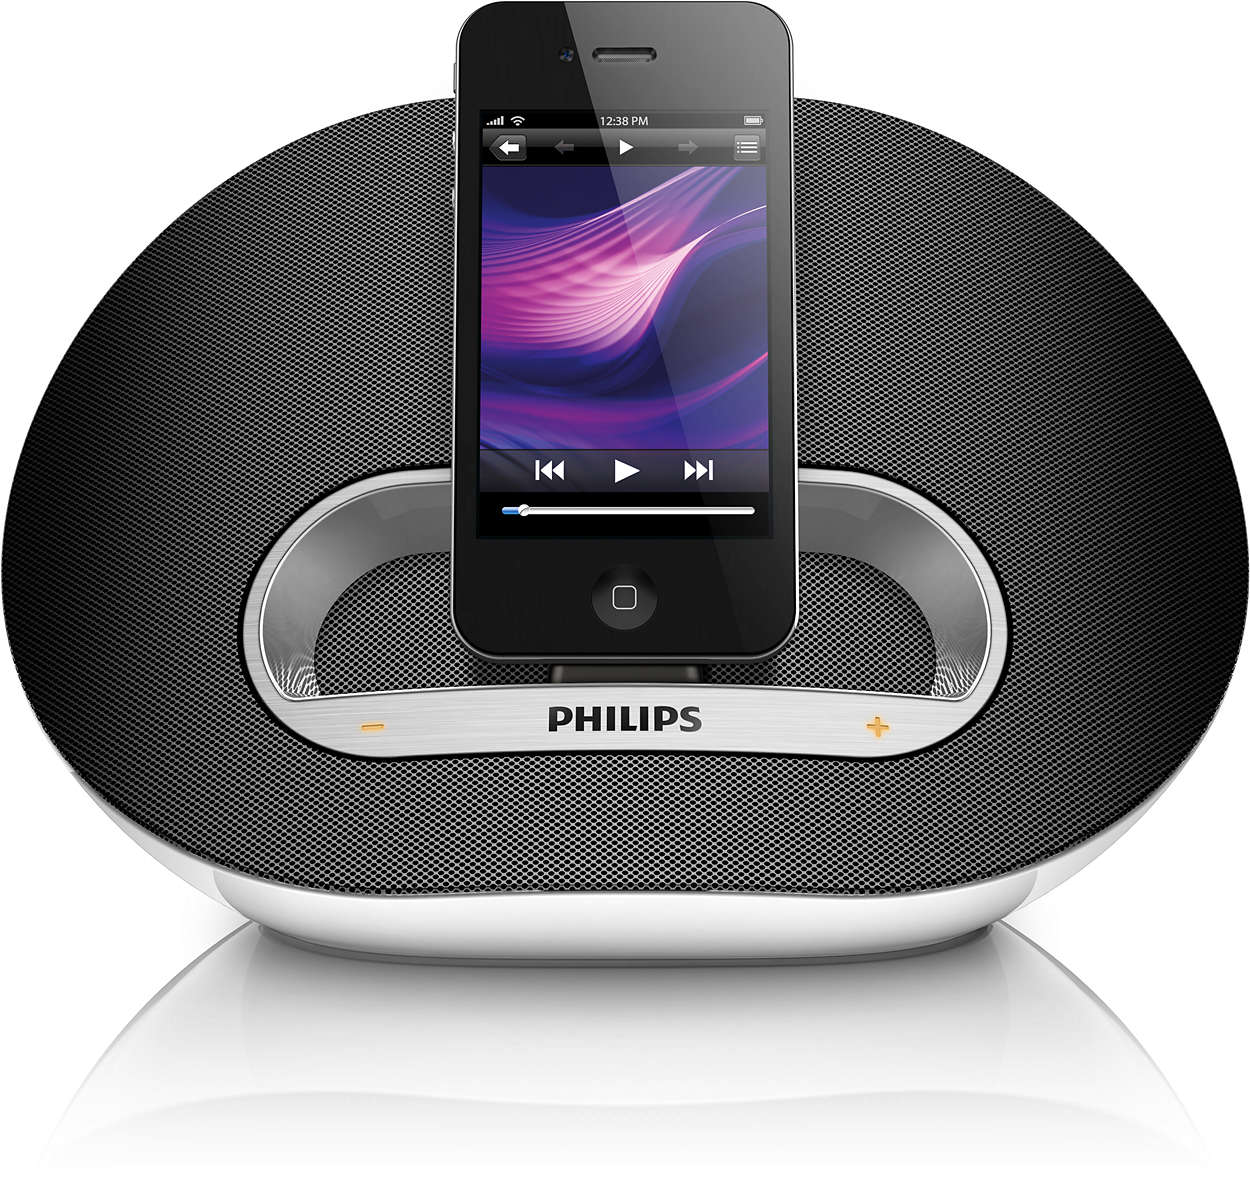 docking speaker ds3100 05 philips. Black Bedroom Furniture Sets. Home Design Ideas